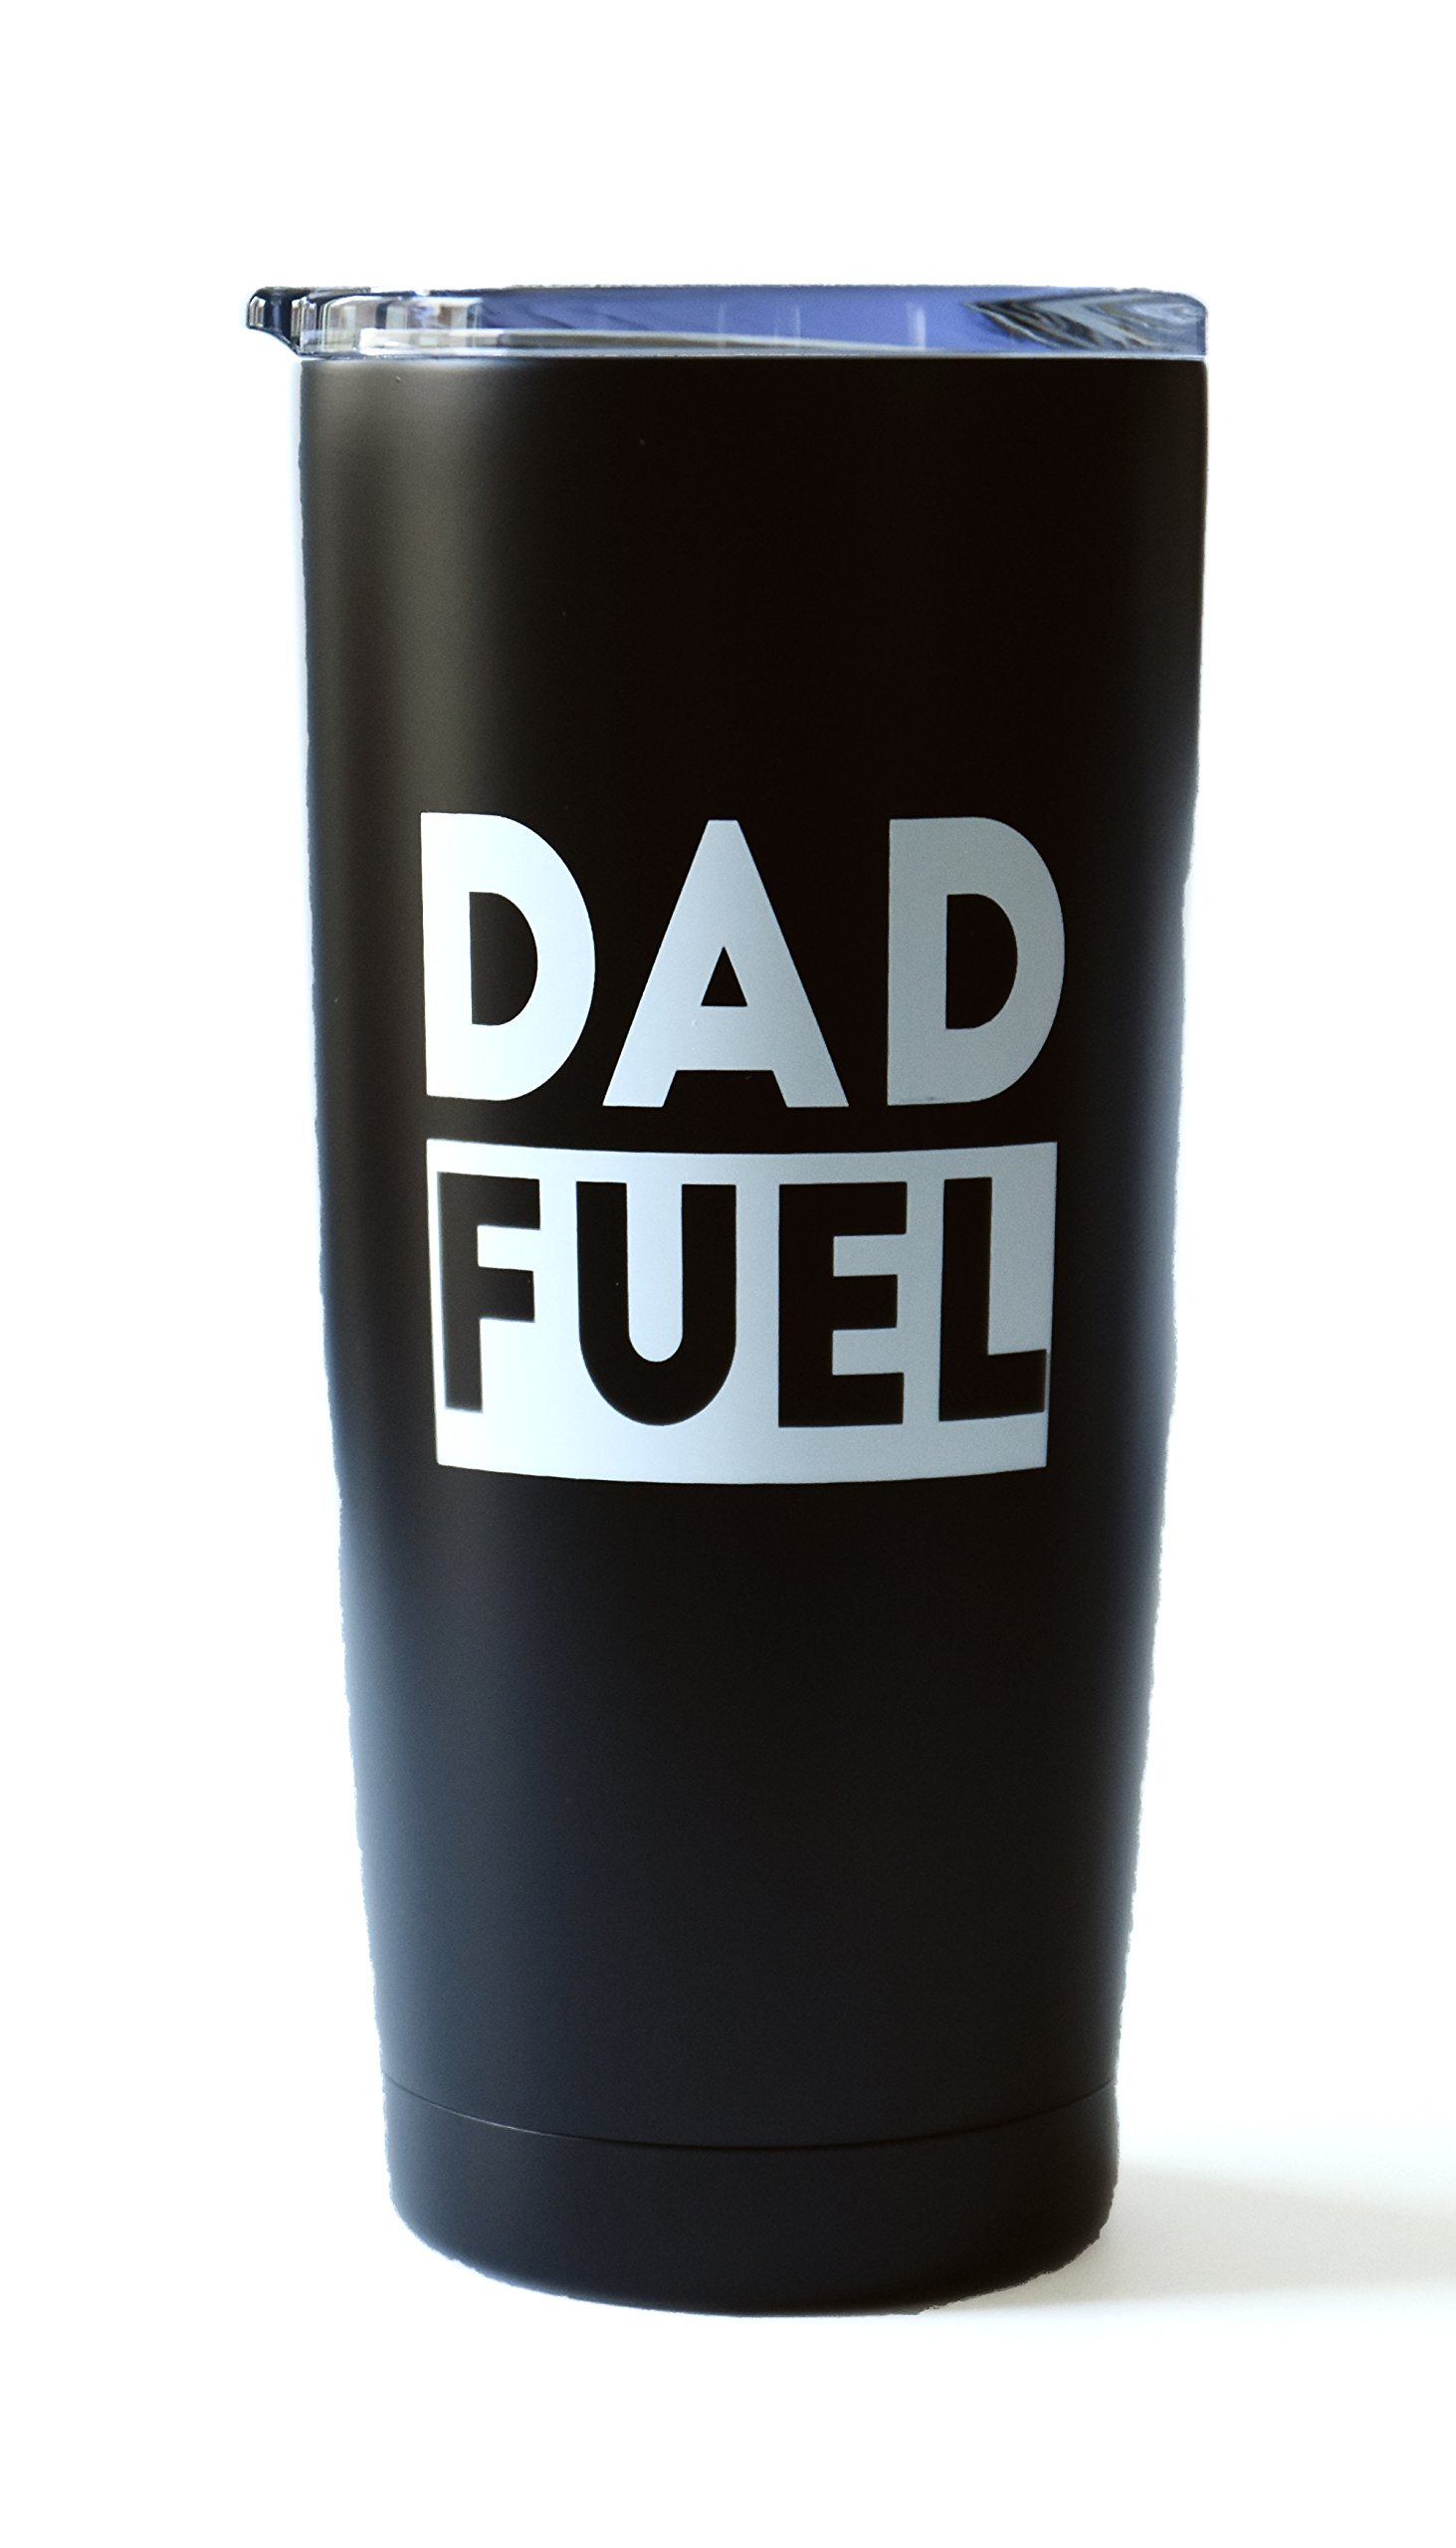 Dad Fuel - 20 oz Stainless Steel Insulated Double Wall Tumbler with Lid (Black and White) - Father's Day, Dad Birthday